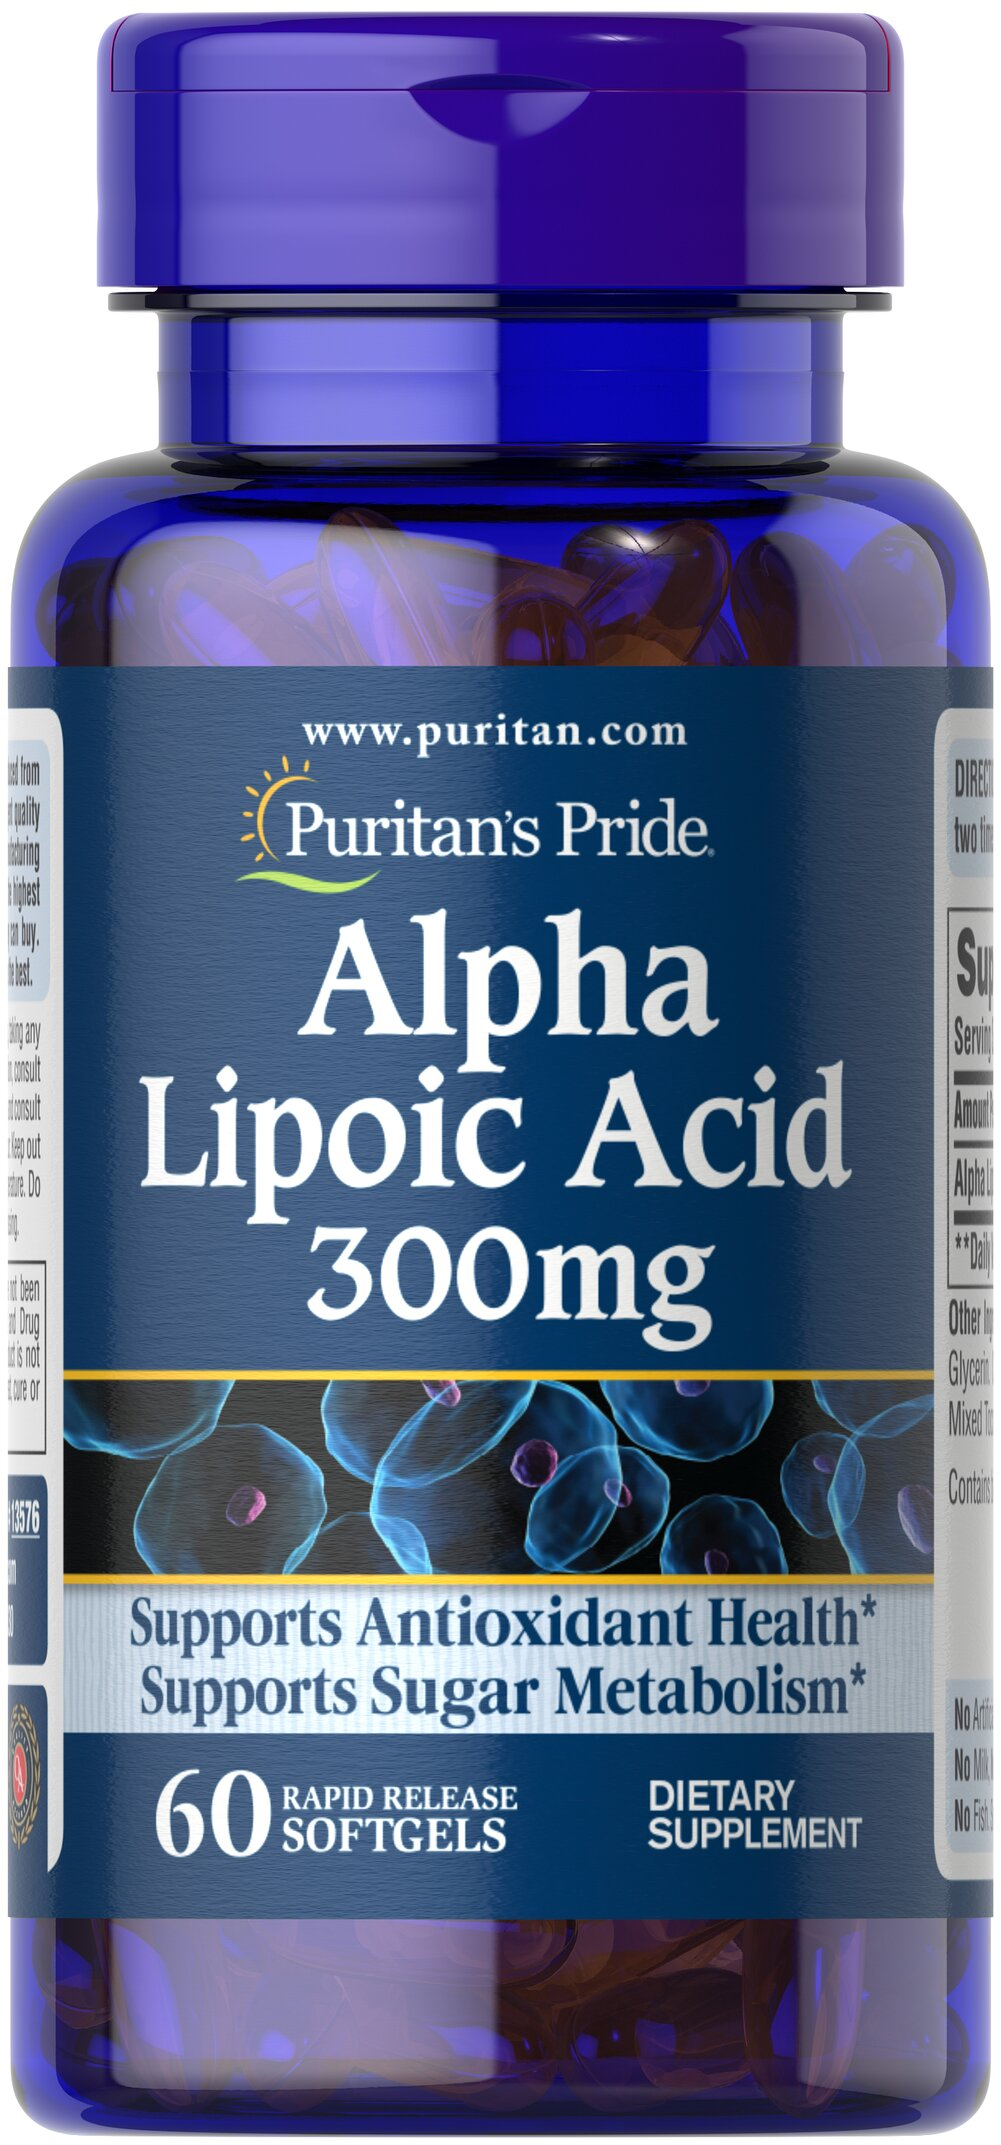 "Alpha Lipoic Acid 300 mg <p>Alpha Lipoic Acid (ALA) helps metabolize sugar, especially in muscles, where it promotes energy.**</p><p>ALA is also beneficial for liver health, and helps to revitalize the underlying structure of the skin so it can look healthier and more radiant.**</p><p>ALA is often called the ""universal antioxidant"" for its ability to help neutralize cell-damaging free radicals.** </p> 60 Softgels 300 mg $12.79"